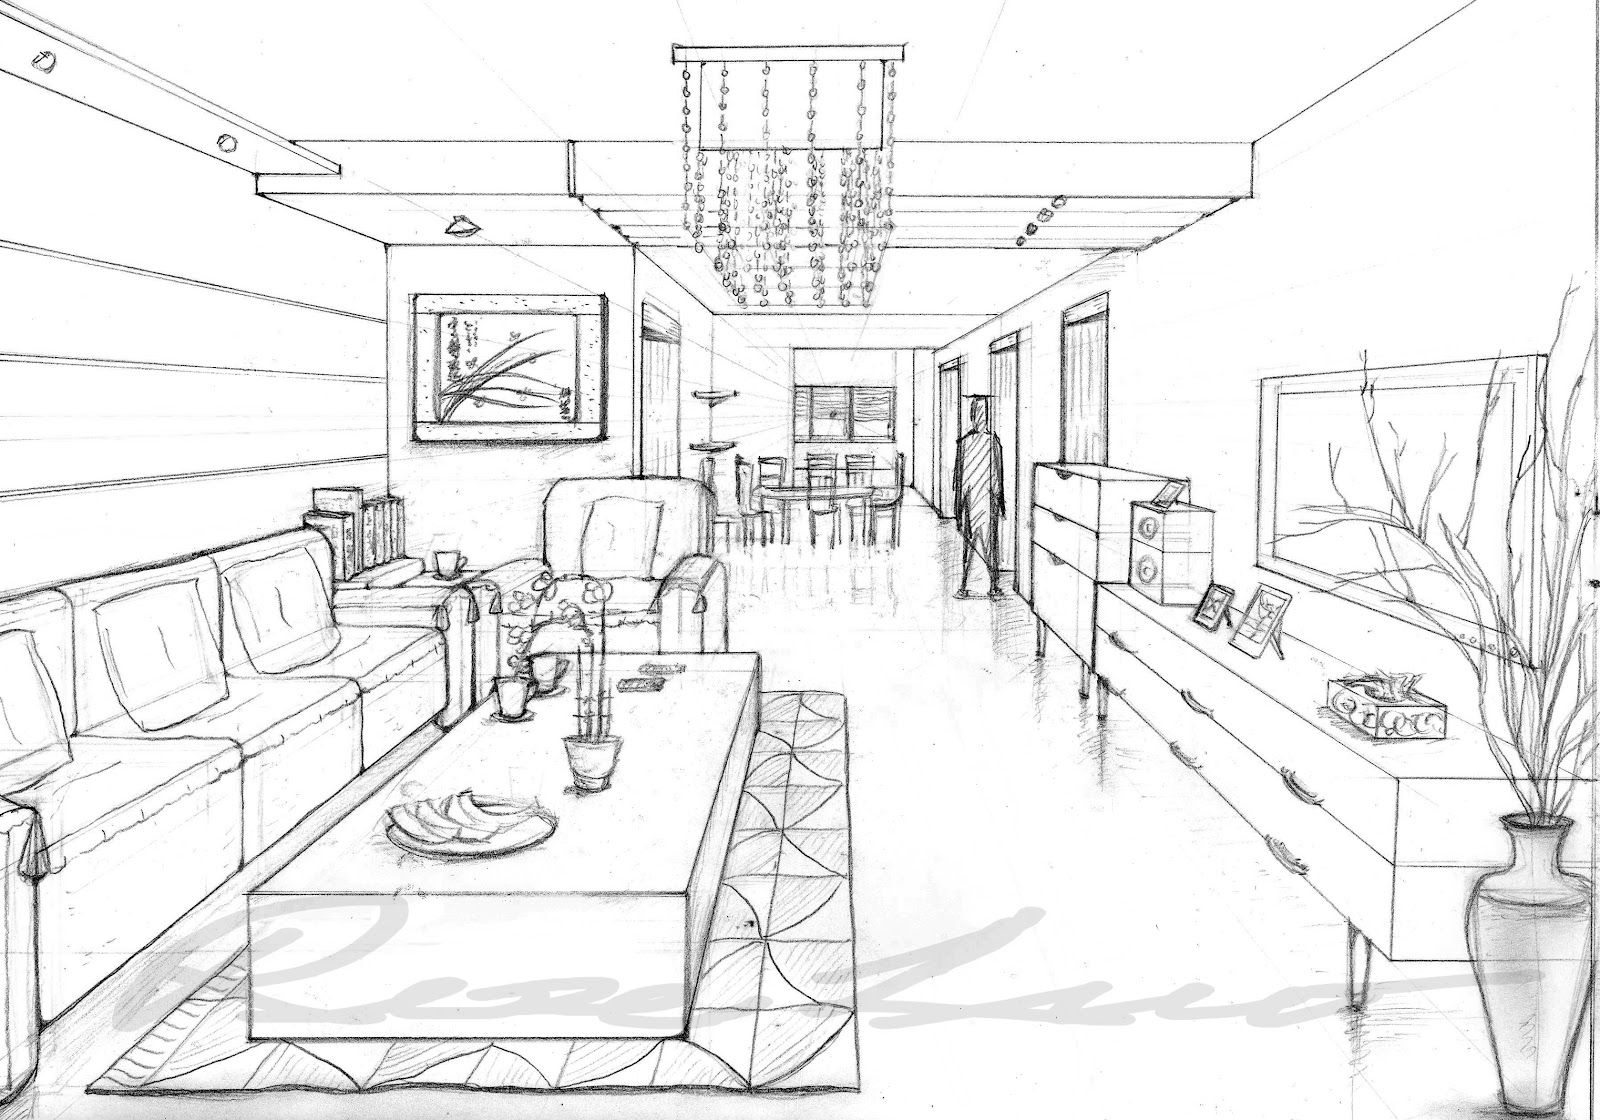 Perspective Imgur Perspective Art Perspective Drawing Drawing Interior